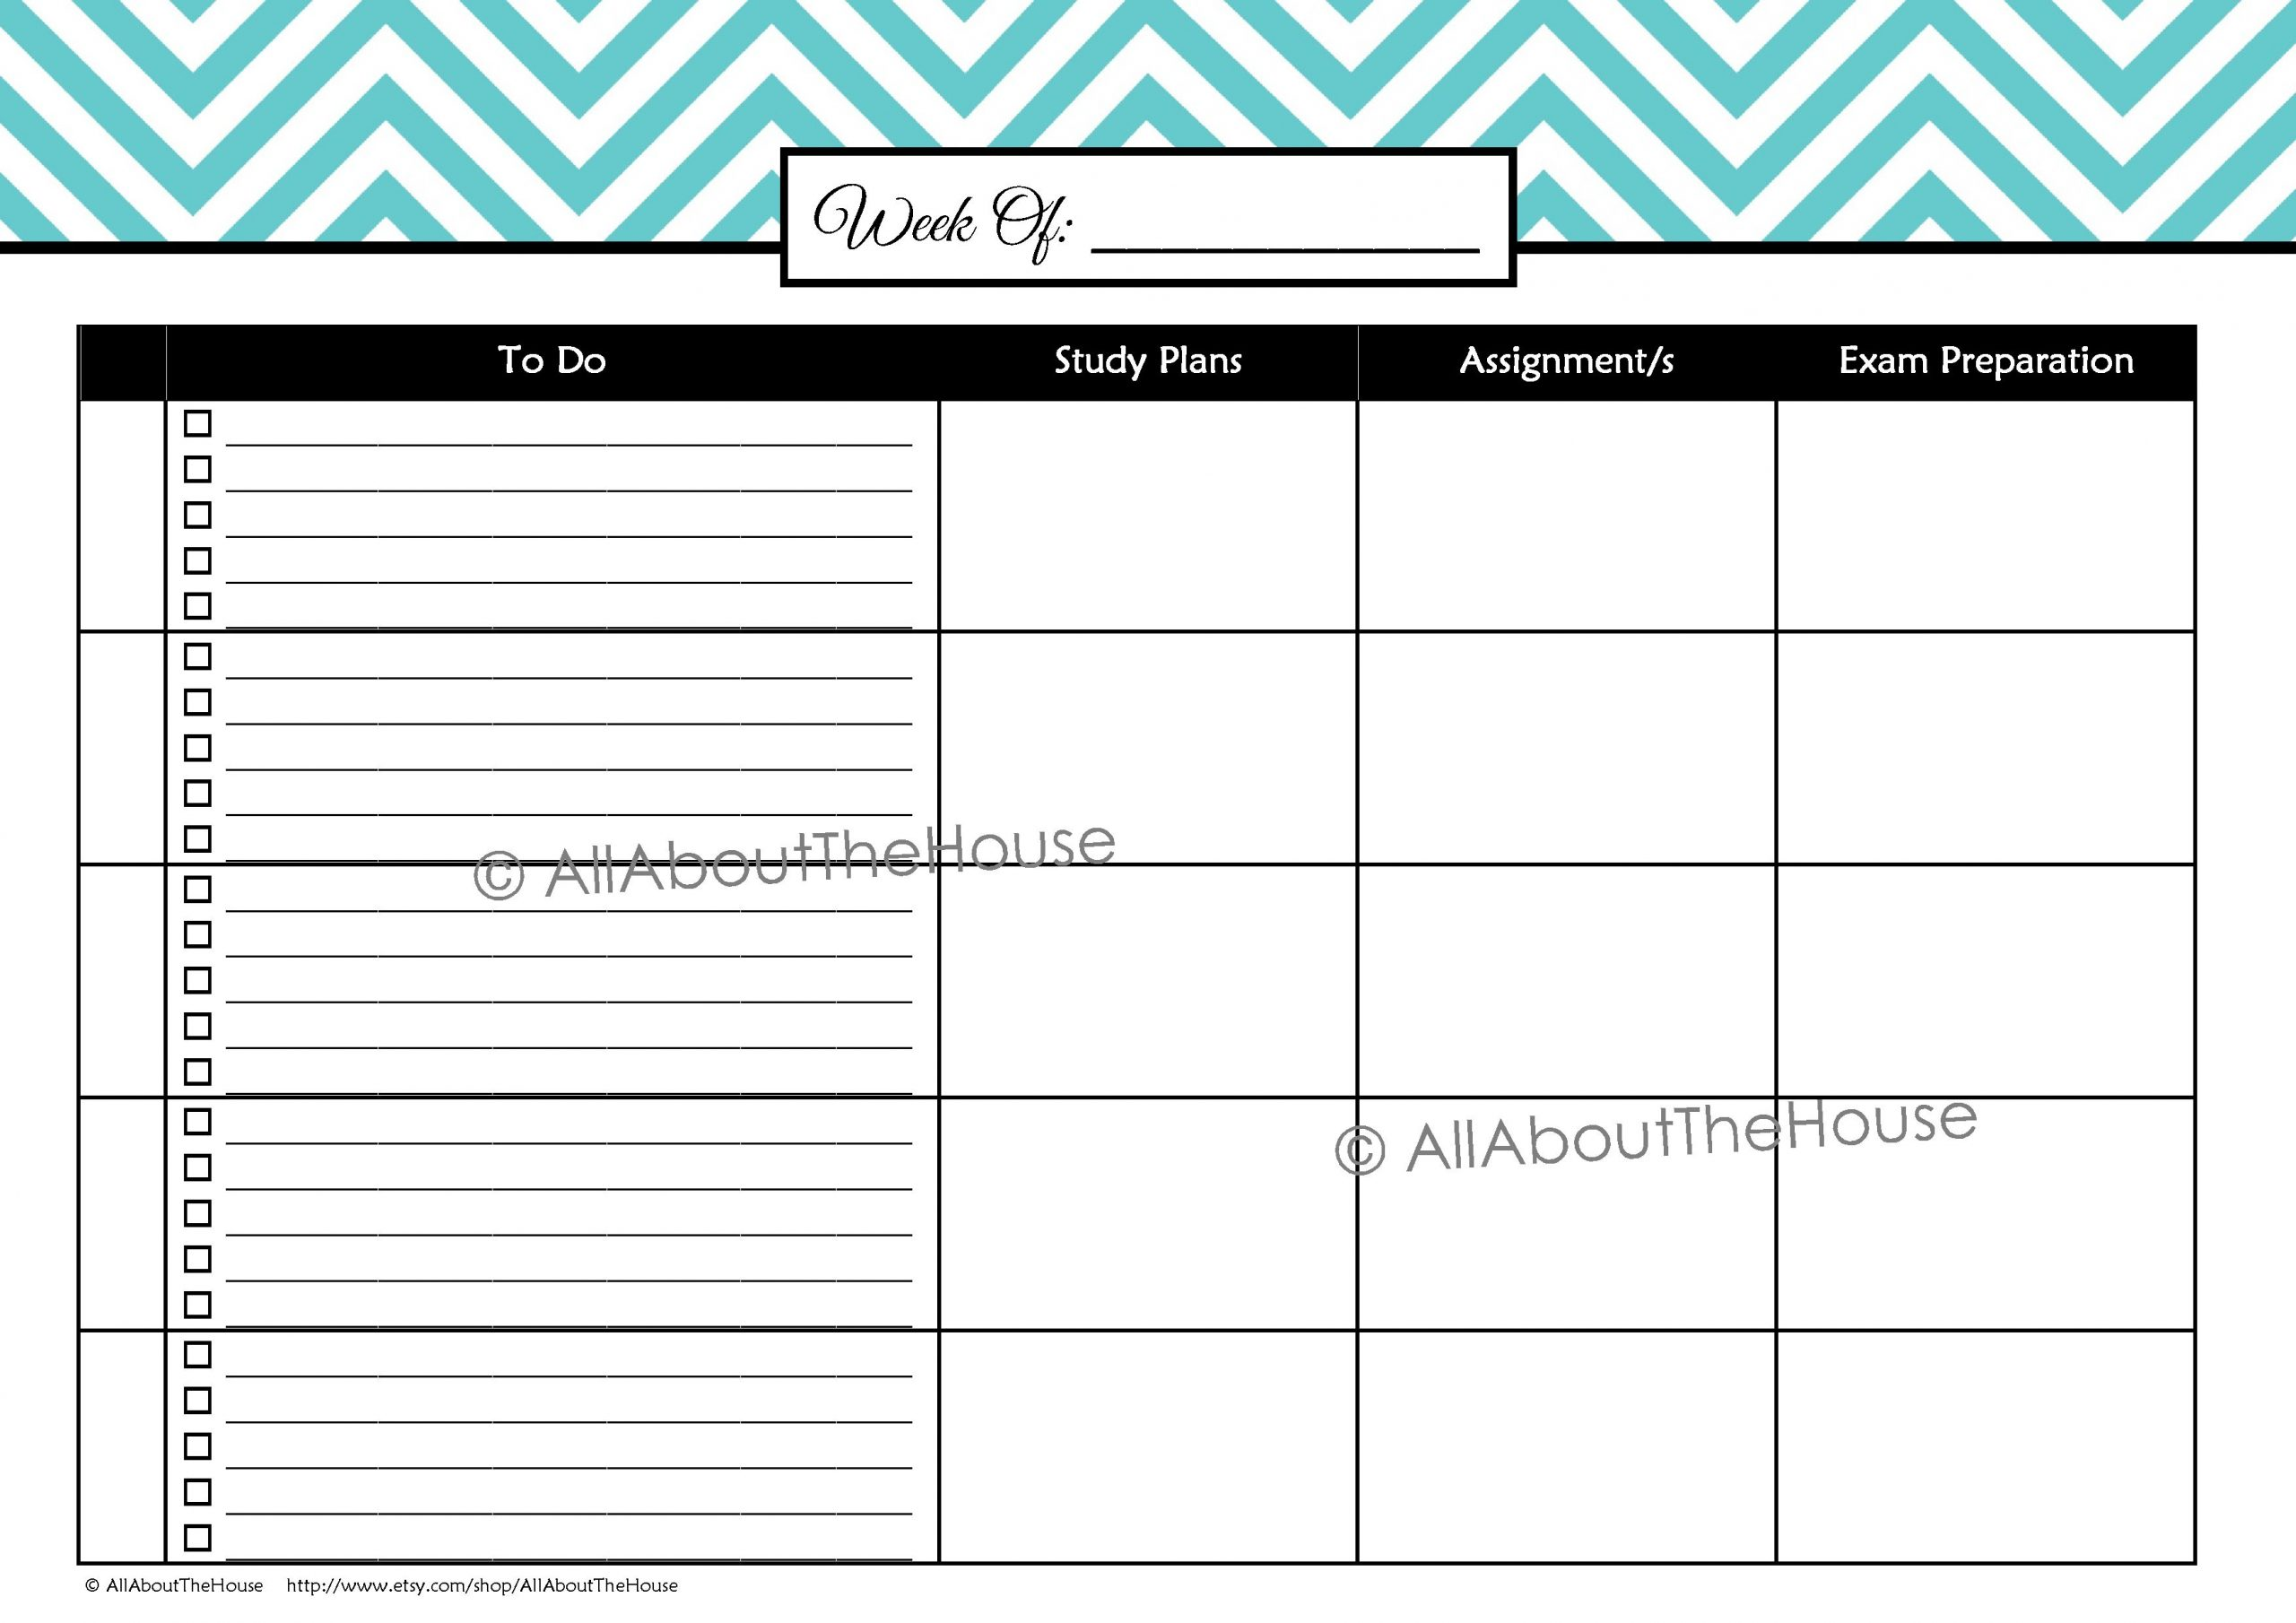 study schedule template 4  Weekly Study Schedule 2 – L Blue(4) | AllAboutTheHouse ..